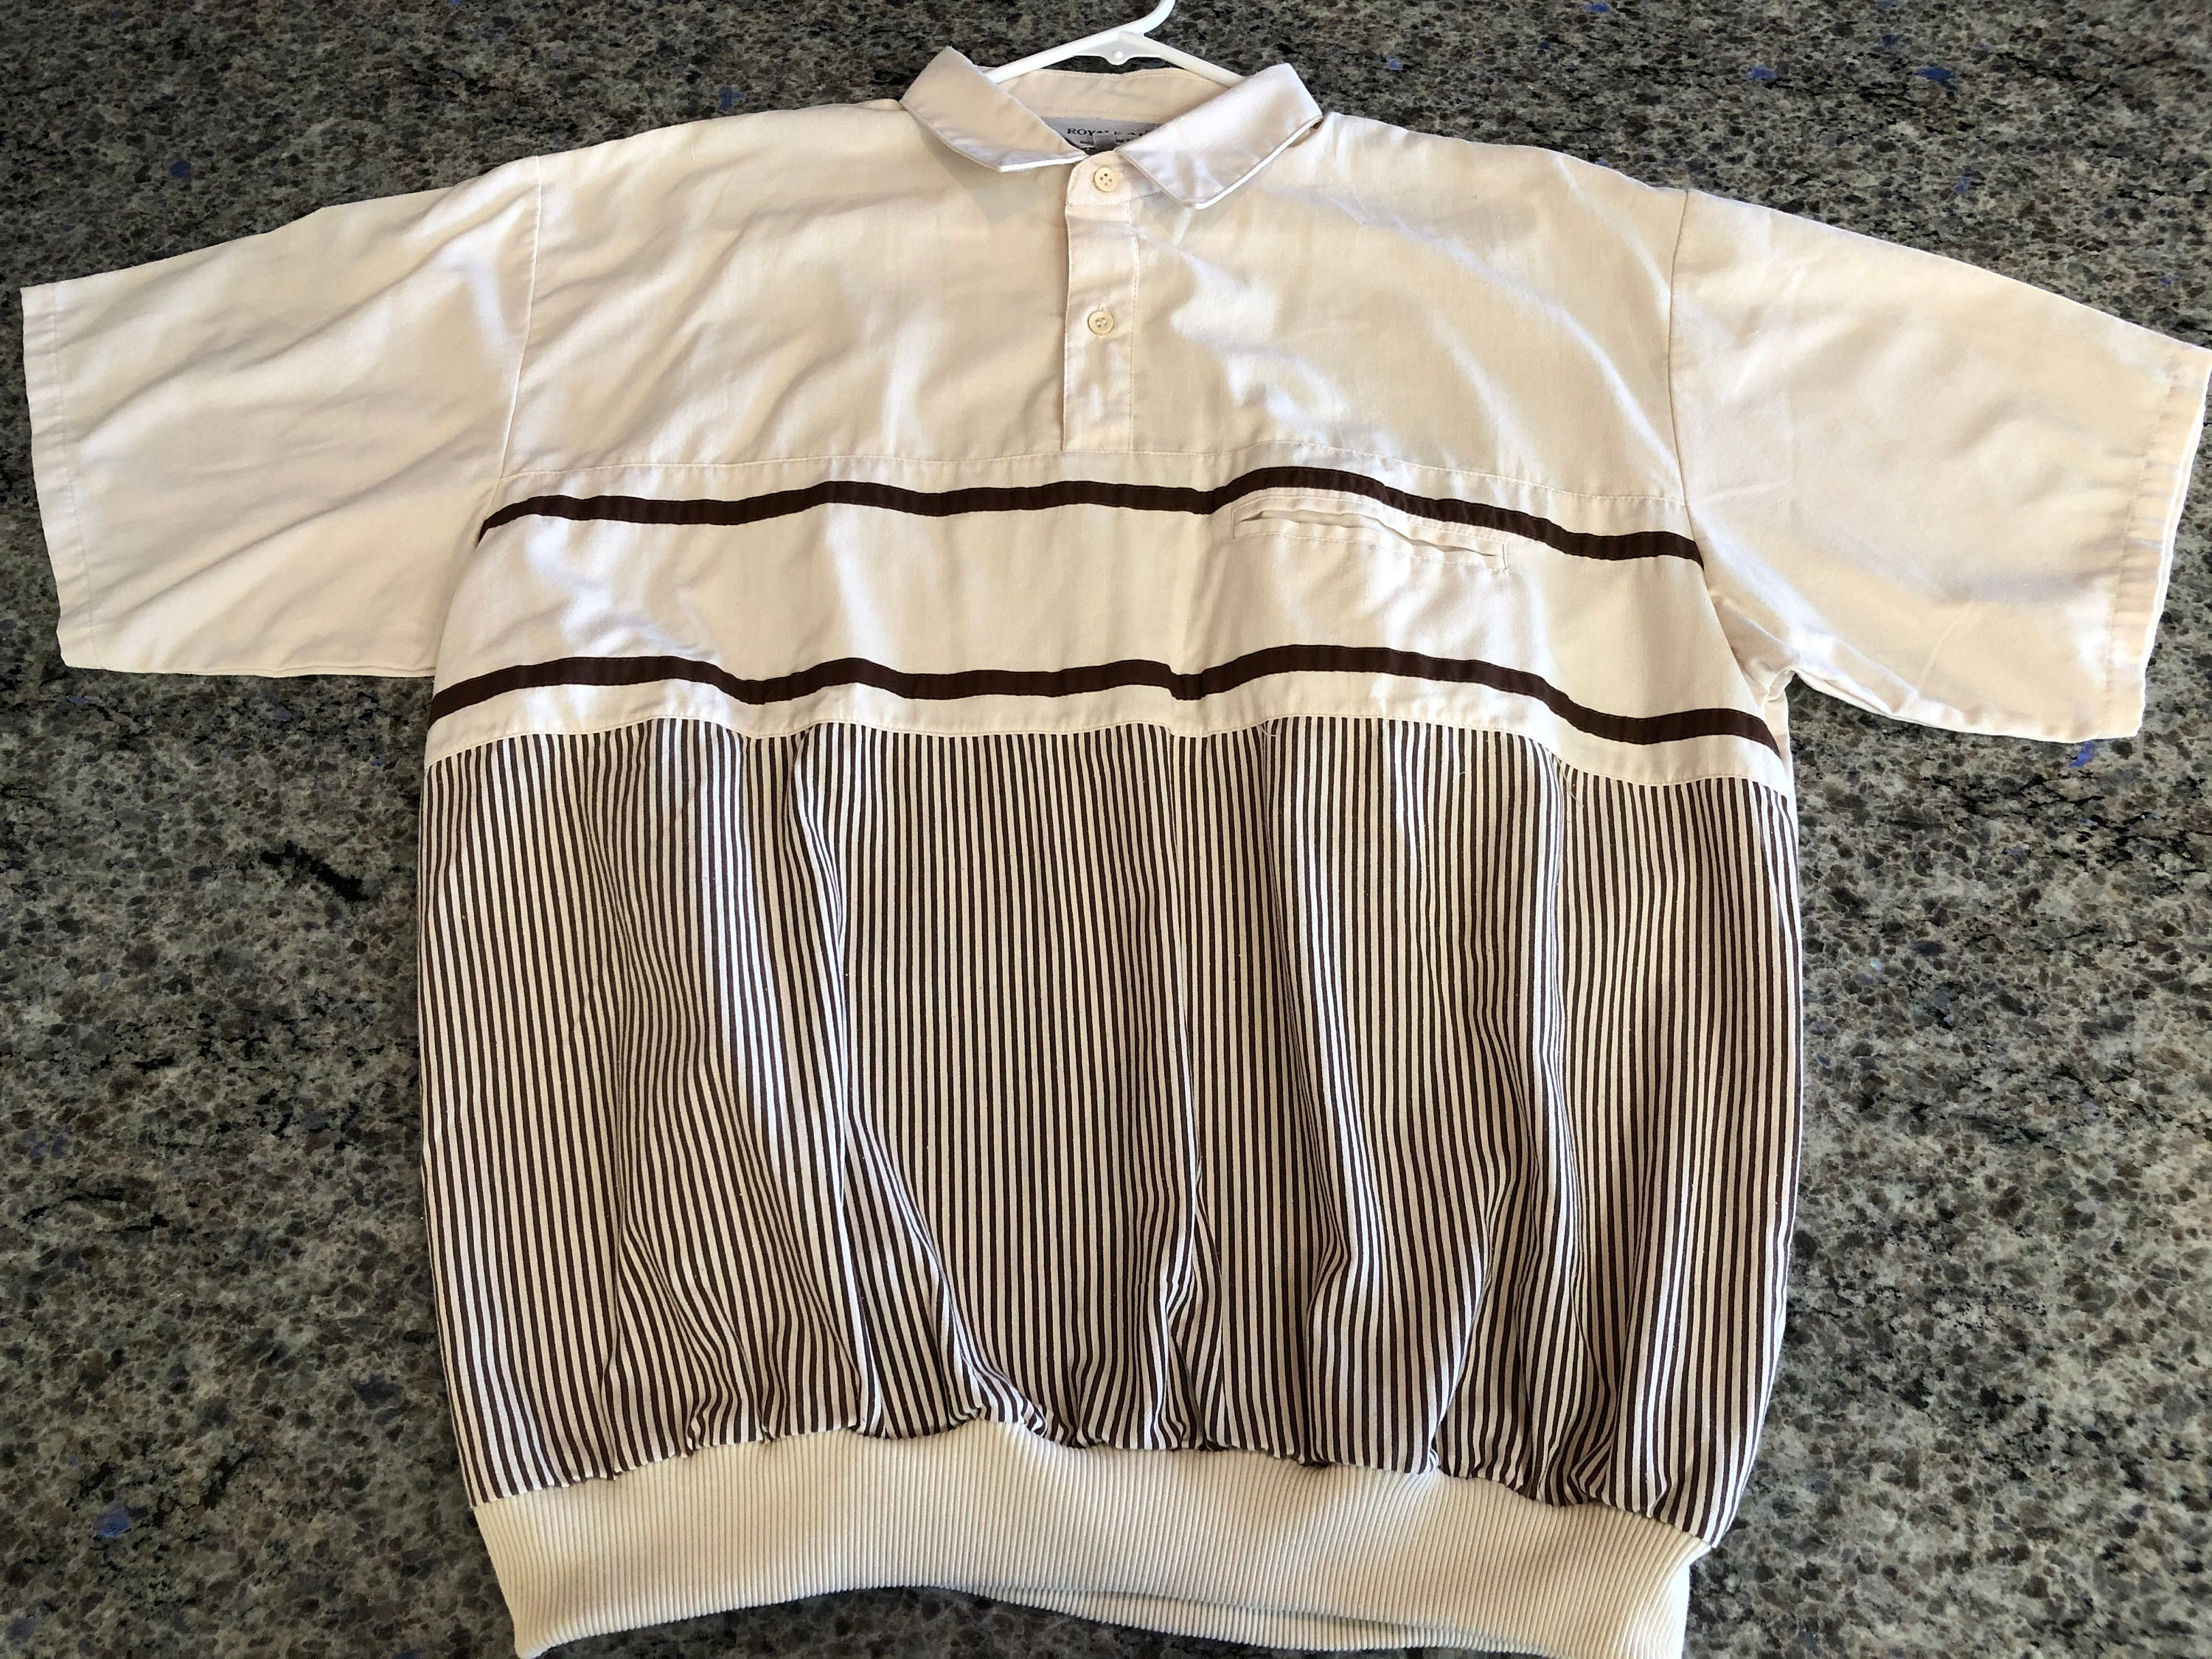 1970s Men's Shirt Styles – Vintage 70s Shirts for Guys Vintage 1970S Mens Royal-Aire Short Sleeve Shirt Elastic Waist Beige With Brown Stripe Size Xl - Elastic Waist Mens Shirt, Beige Shirt $26.00 AT vintagedancer.com